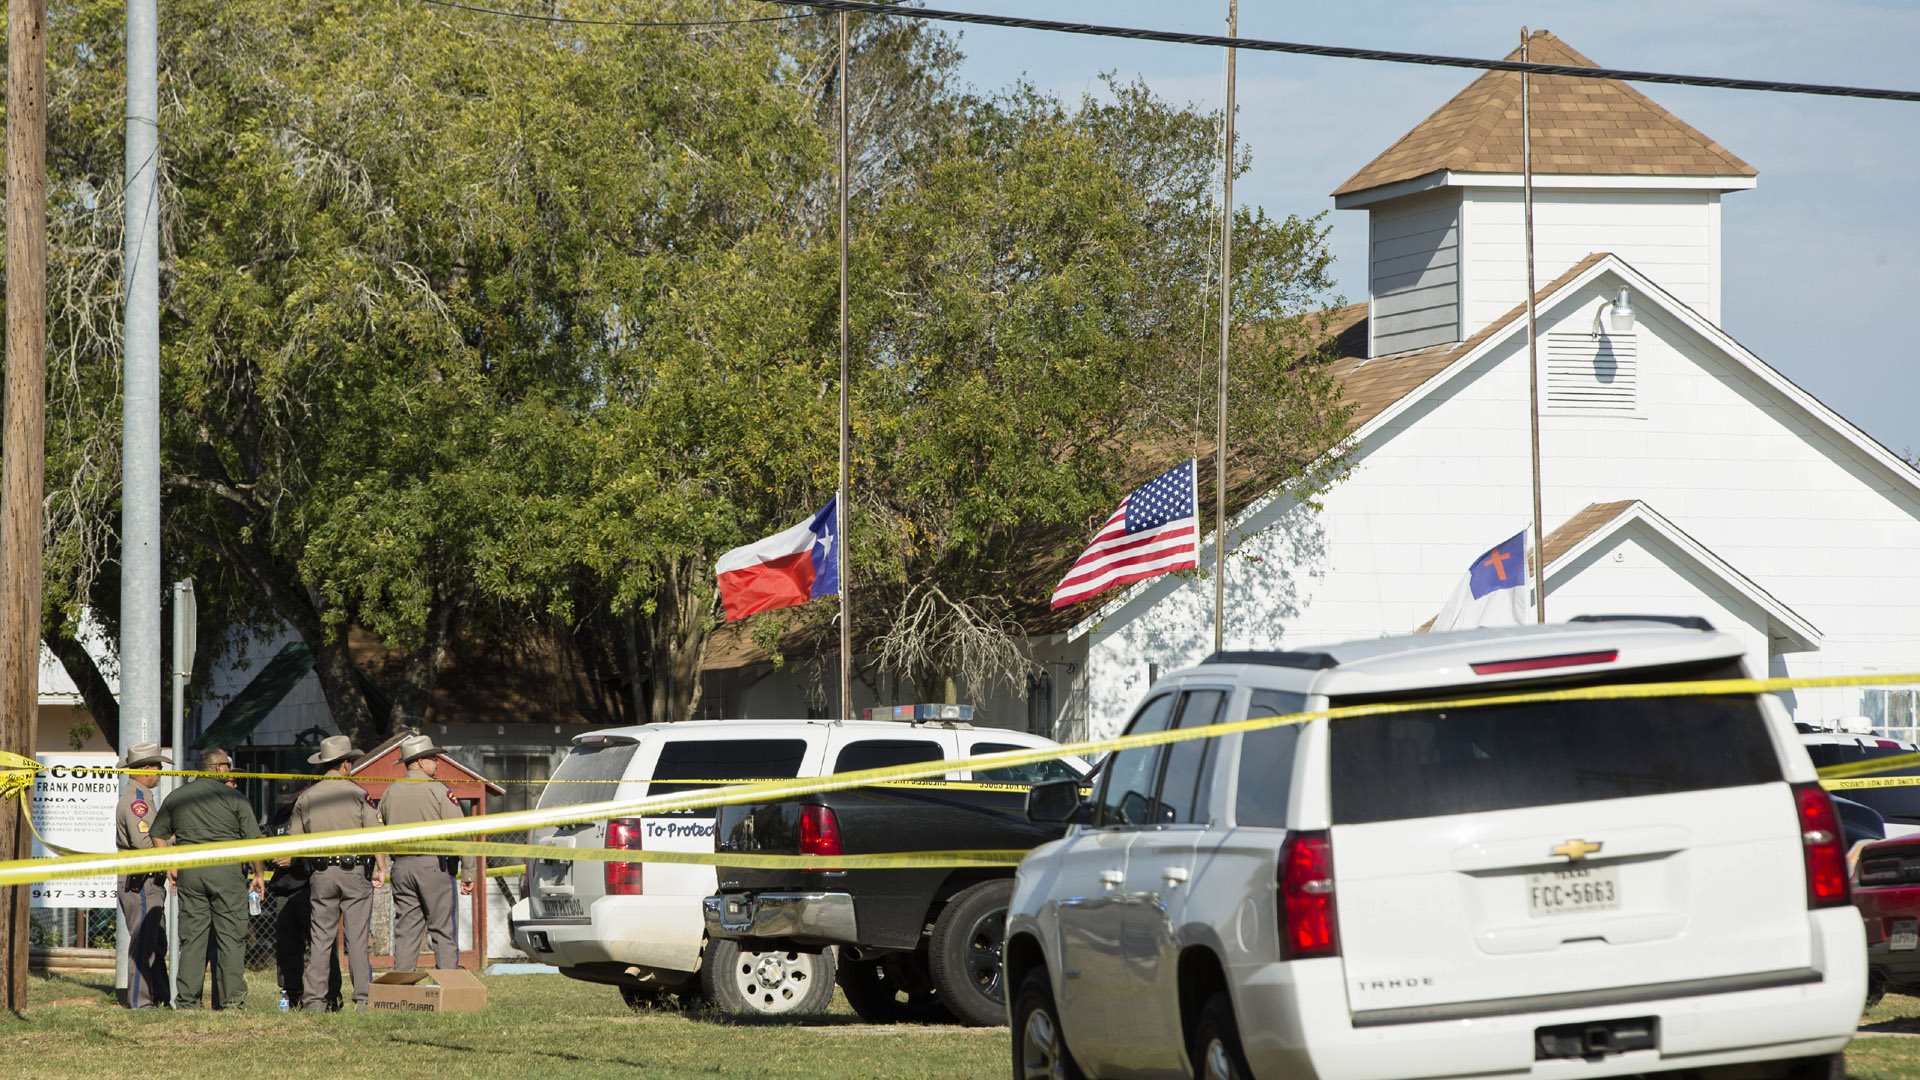 Texas church shooting, shot of scene, Sutherland Springs, First Baptist Church53826118-159532